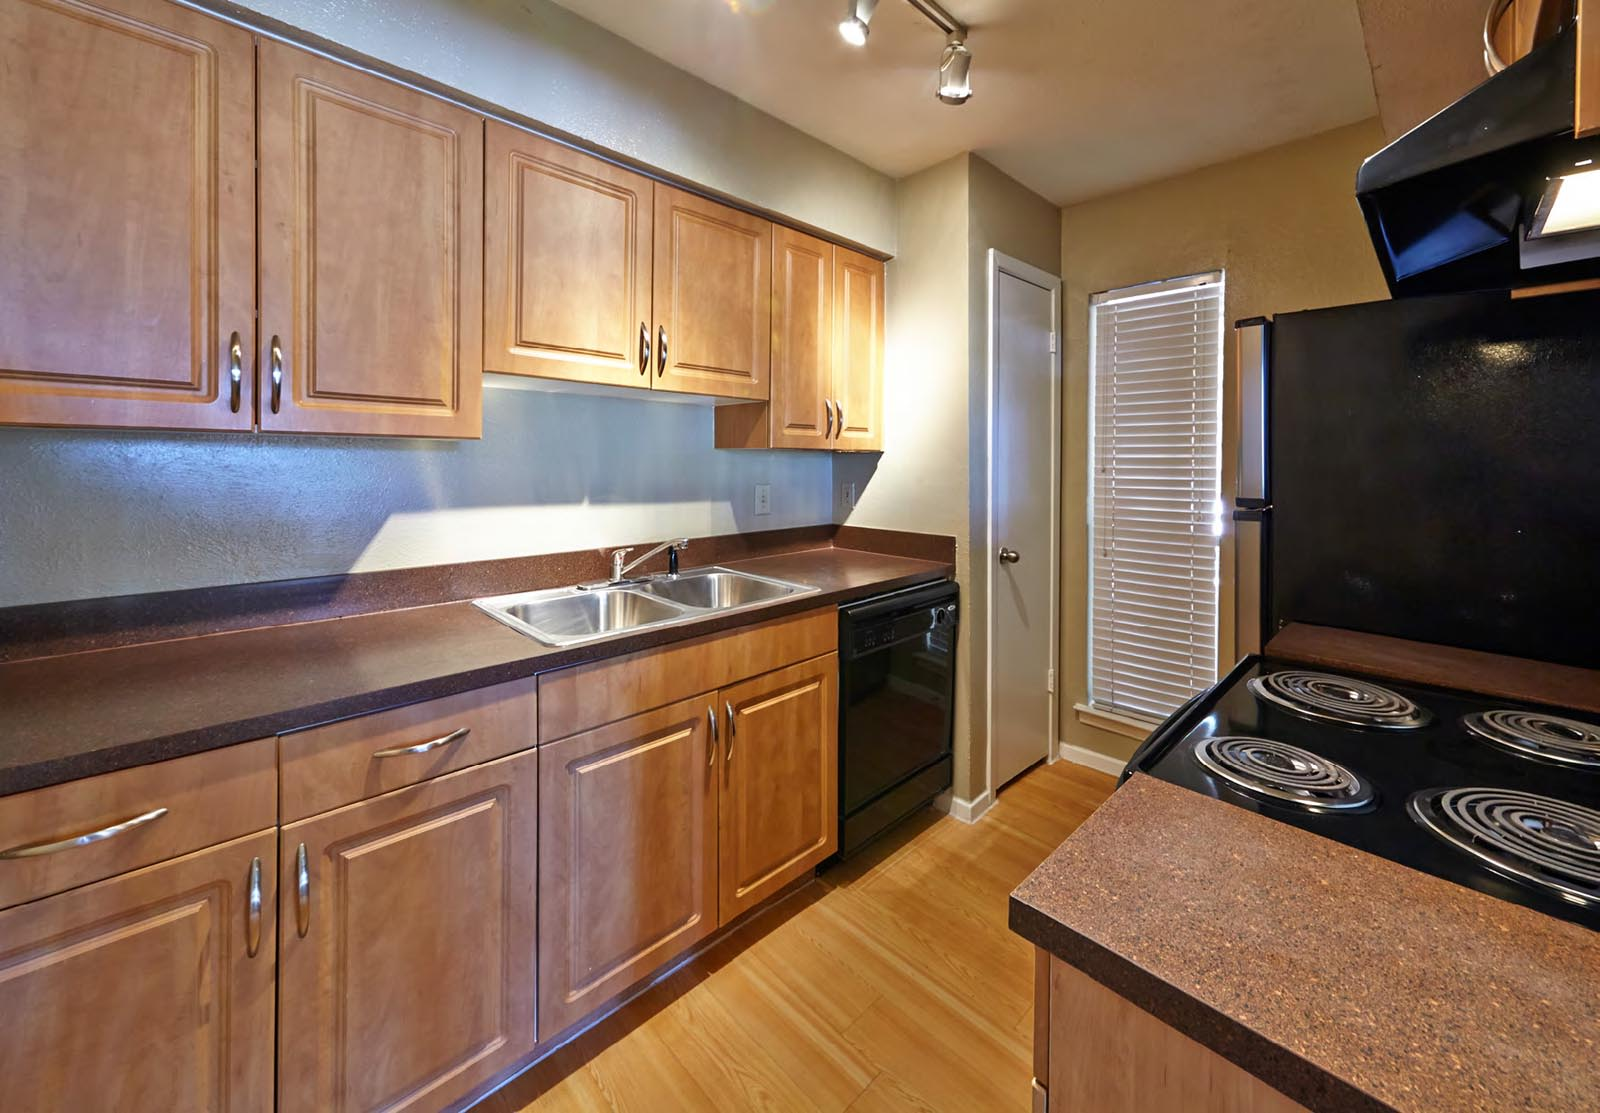 Apartments in Woodhaven, Fort Worth, TX (see photos, floor plans ...